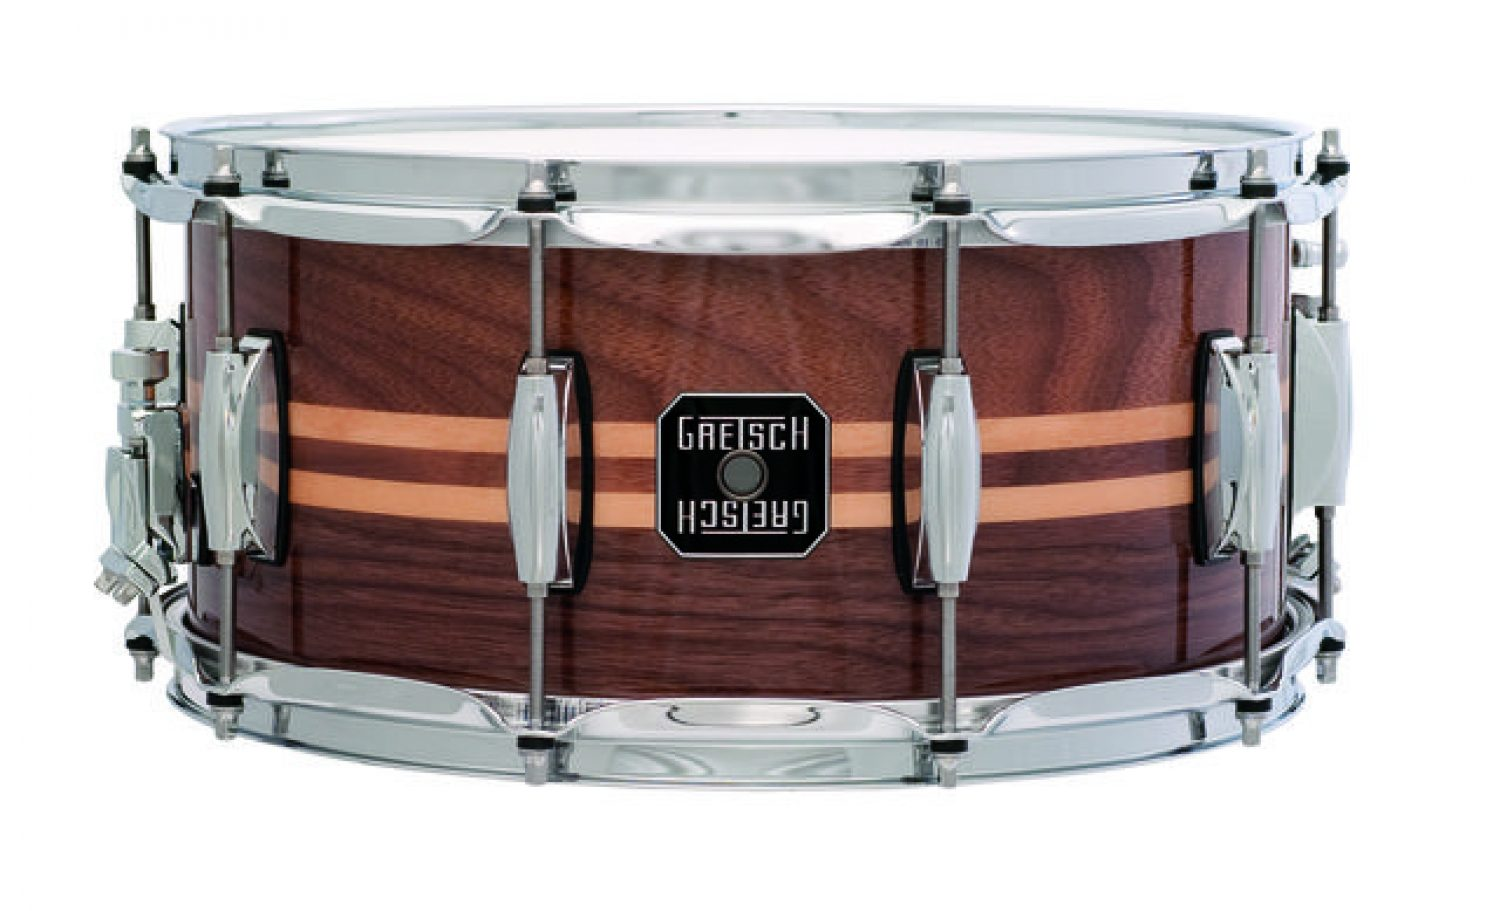 NAMM 2013: New Snare Drums by Gretsch